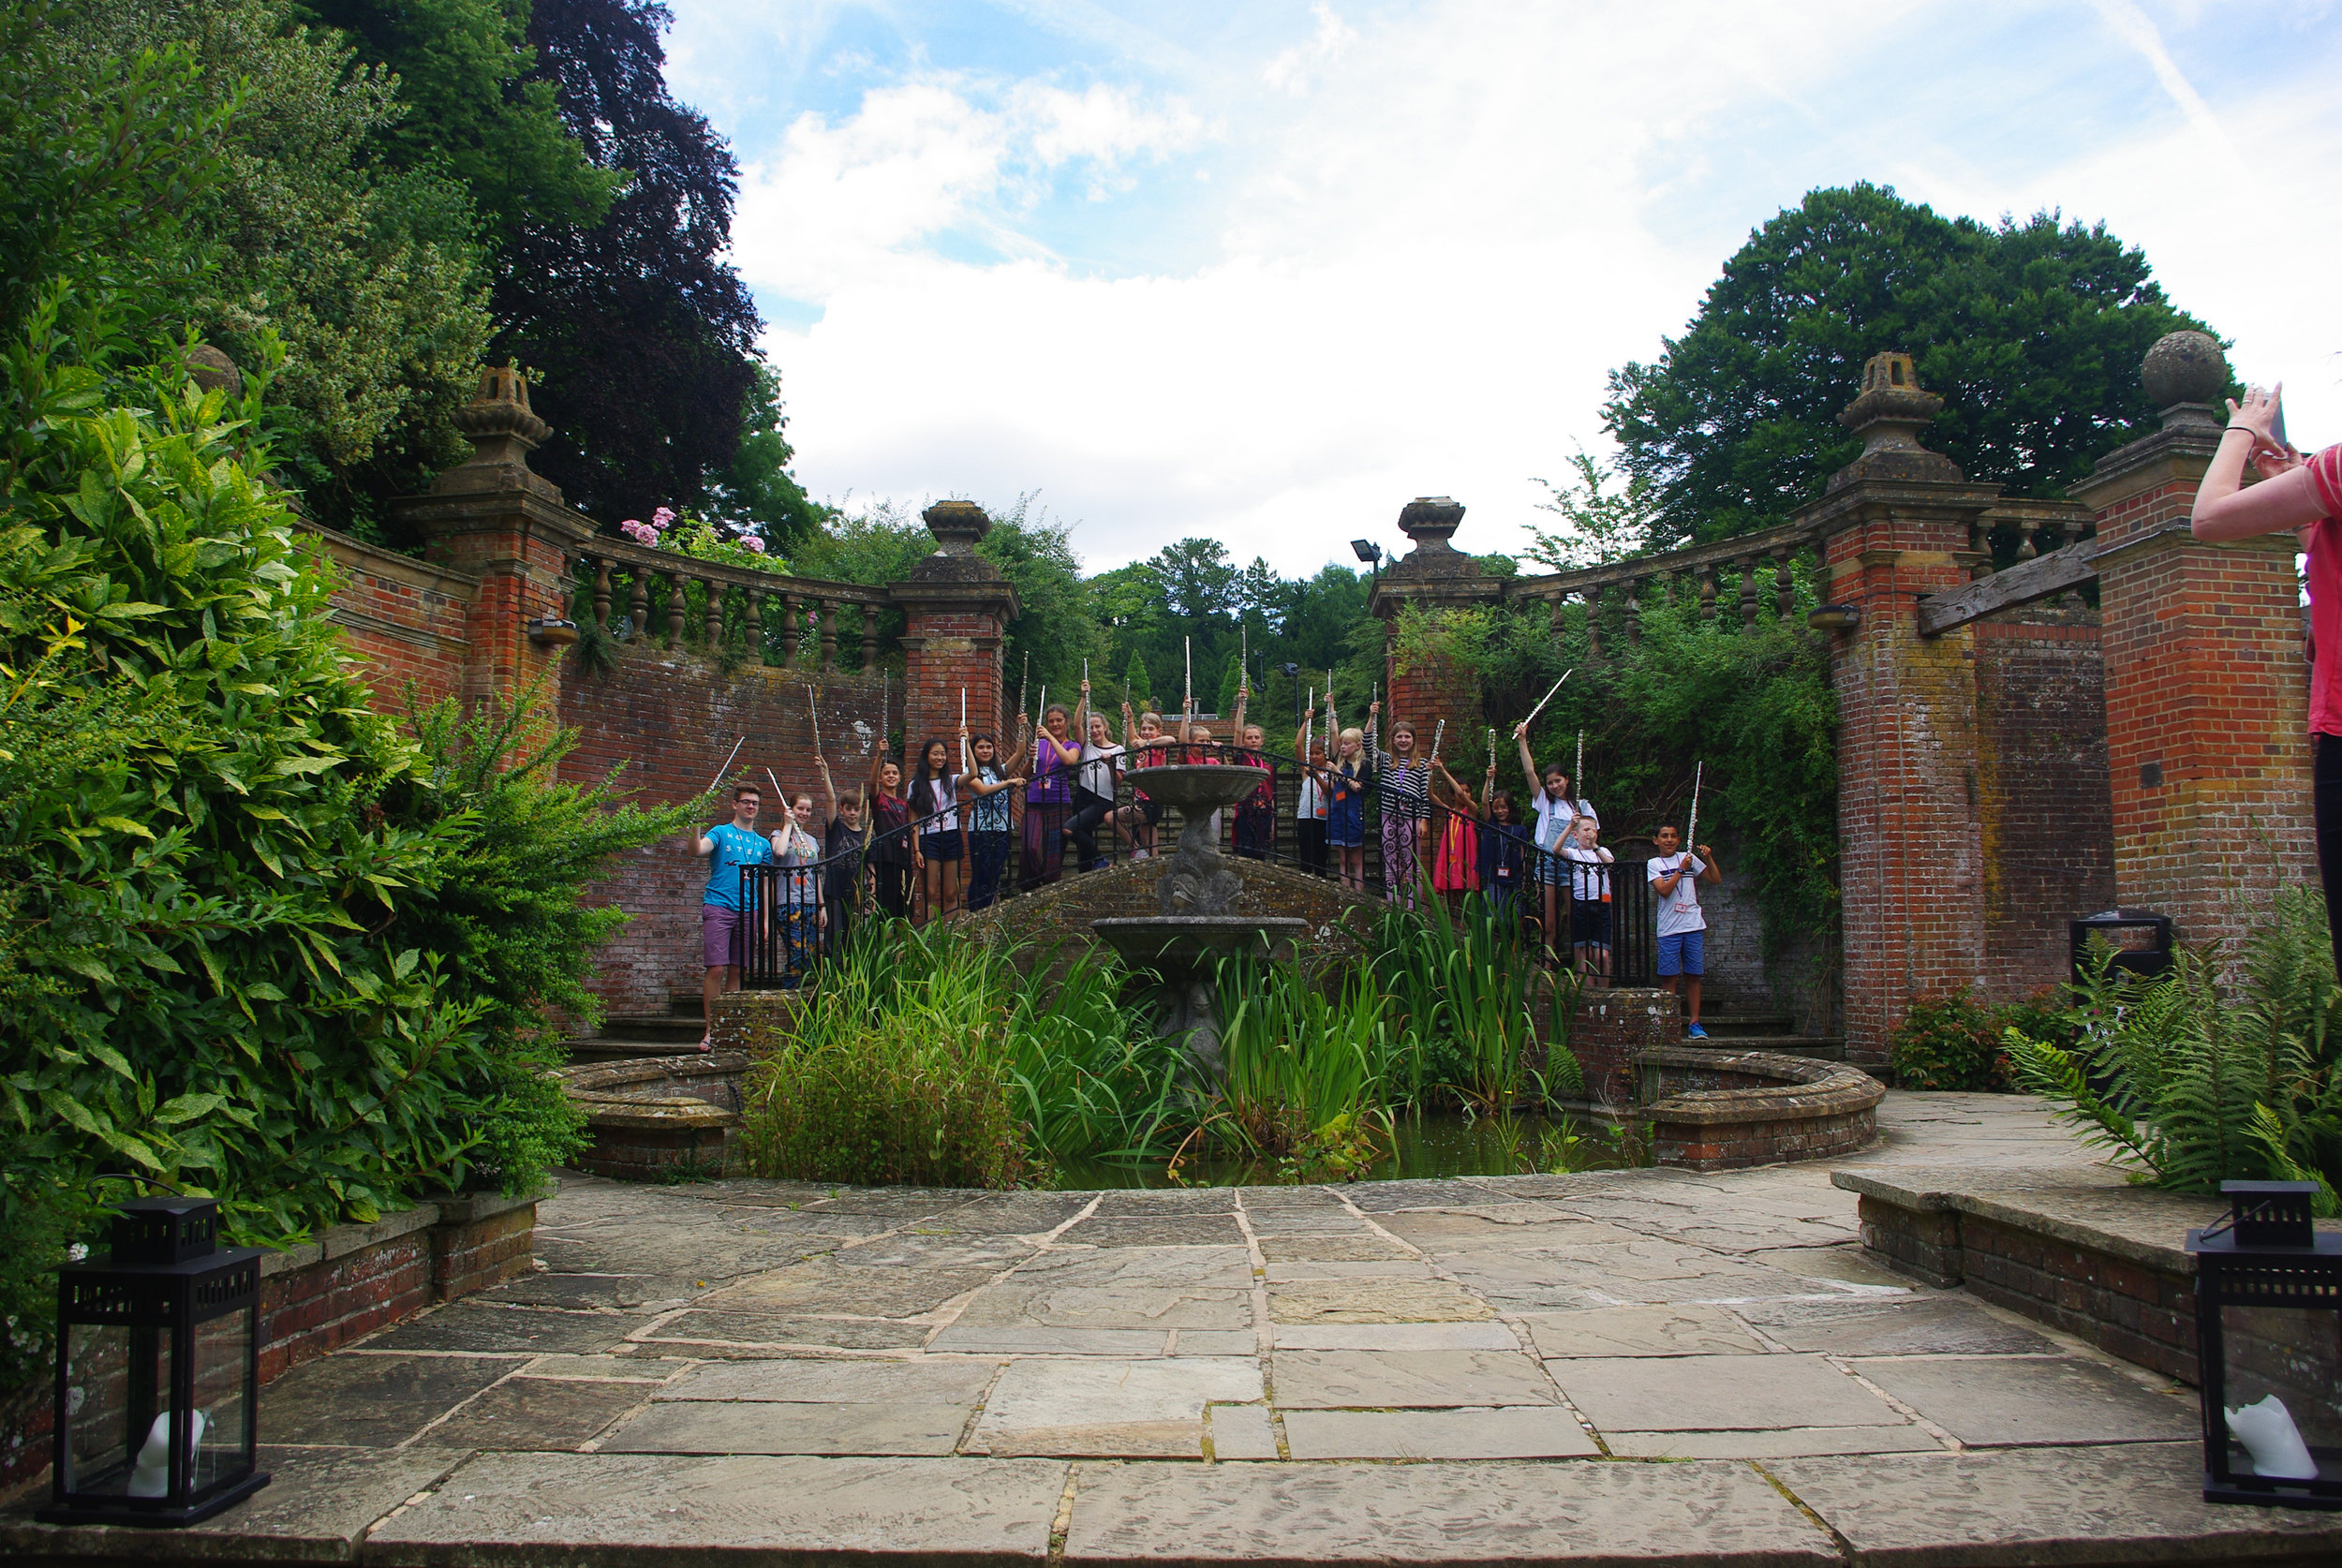 The beautiful gardens at Woldingham, the perfect place for an intensive flute course.